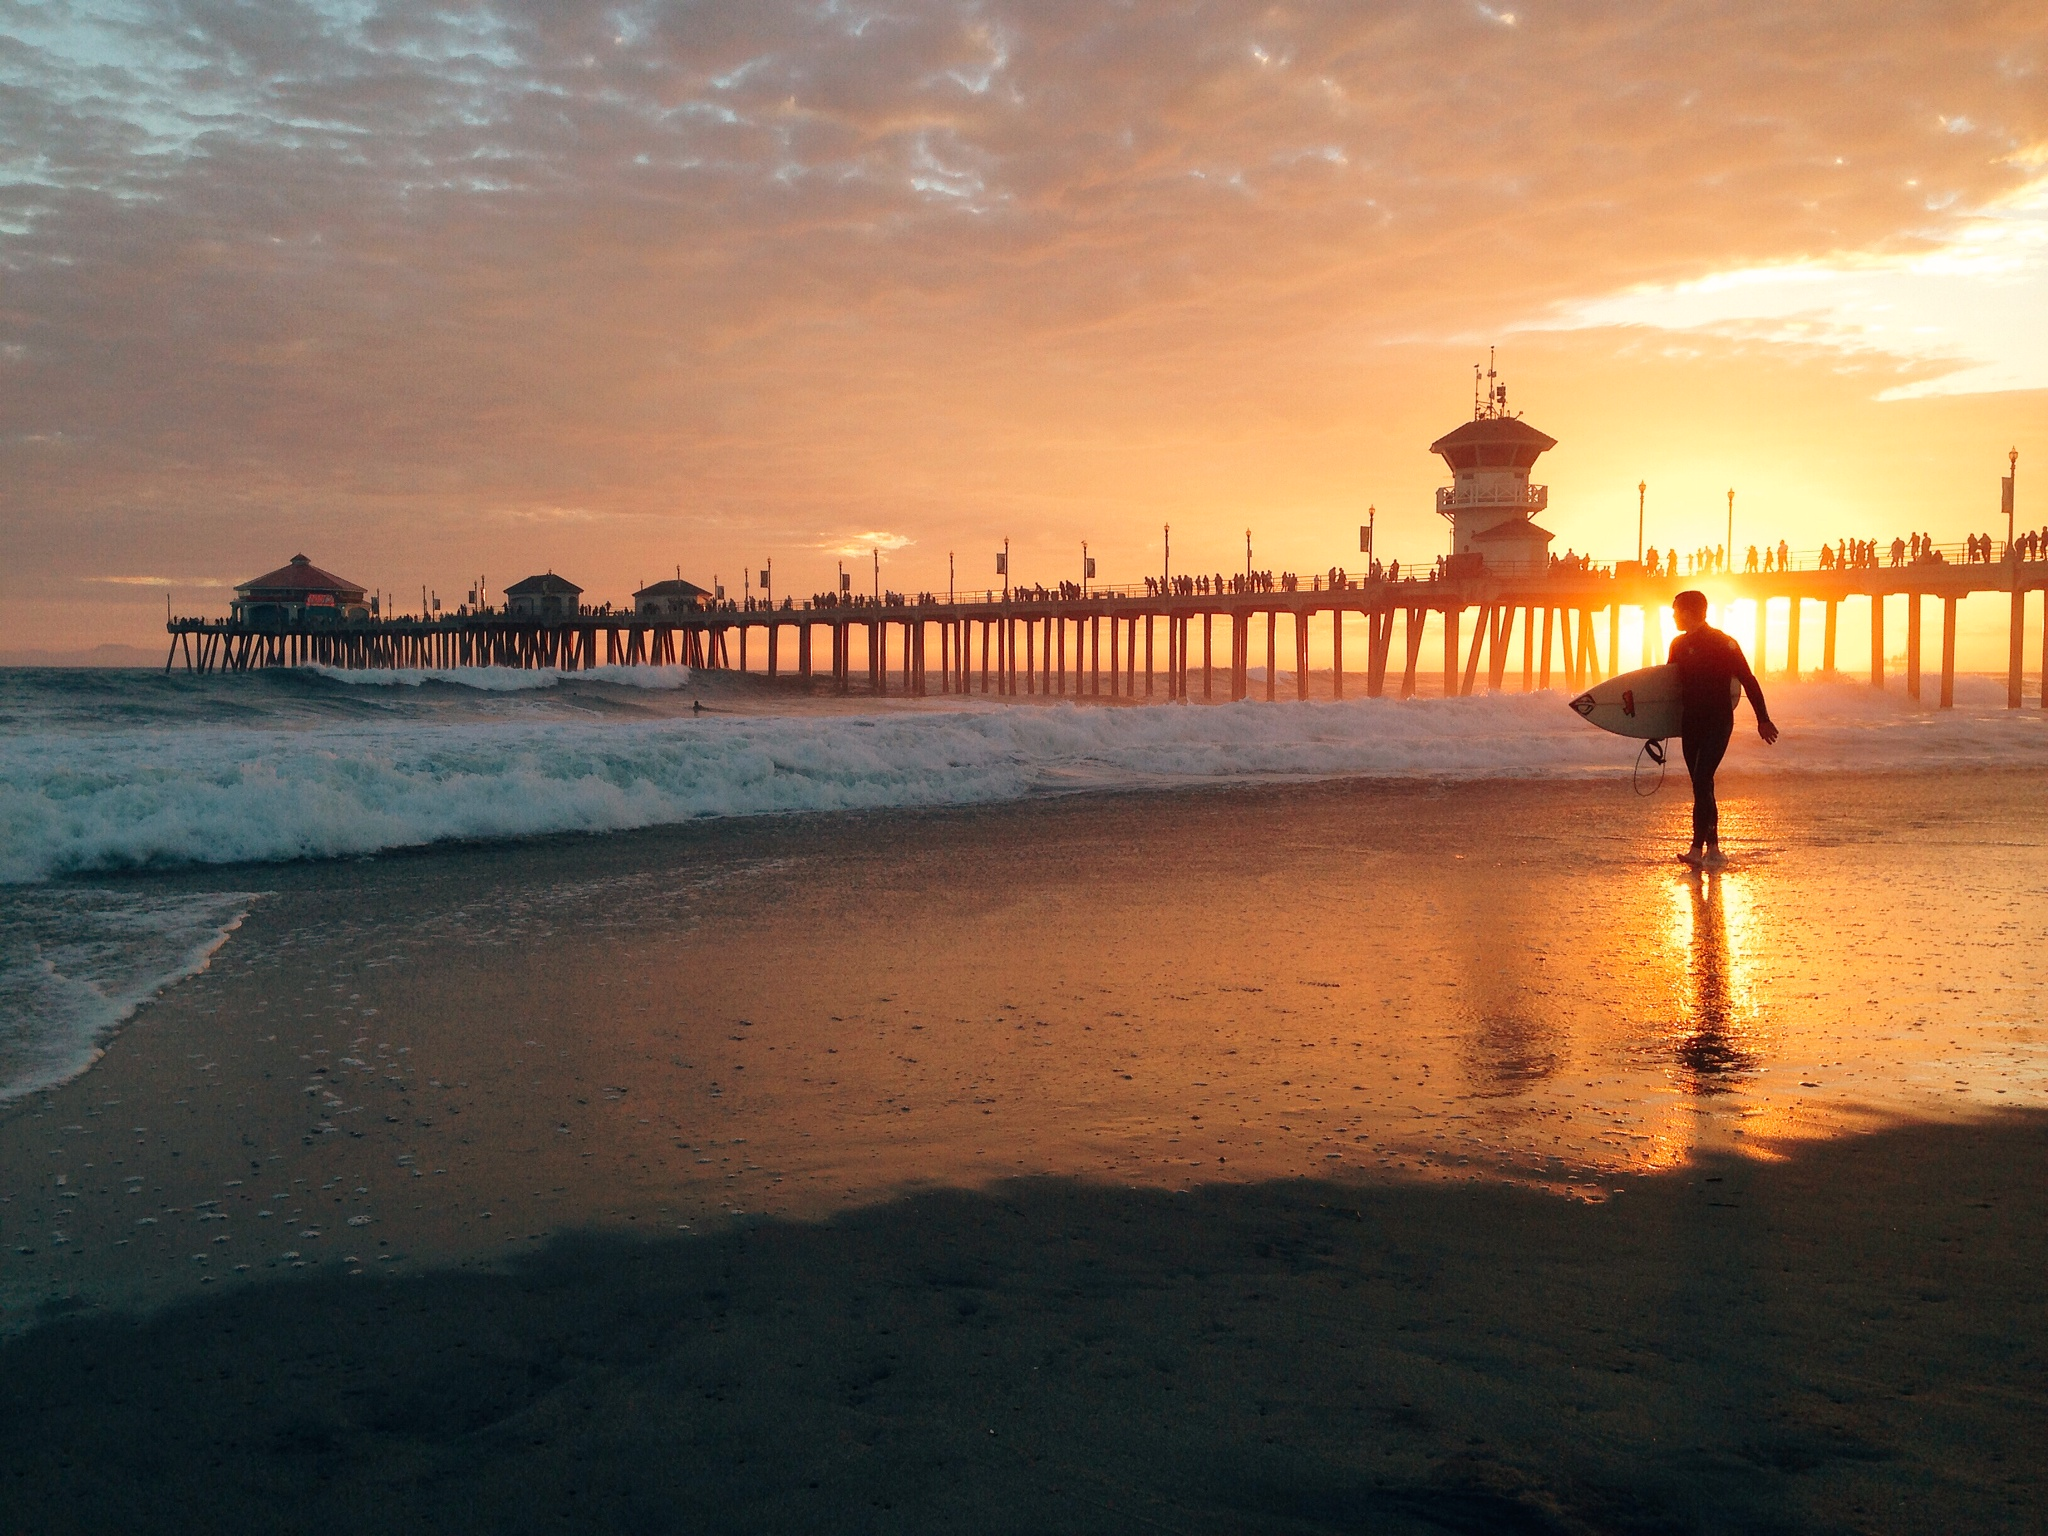 Huntington Beach in California